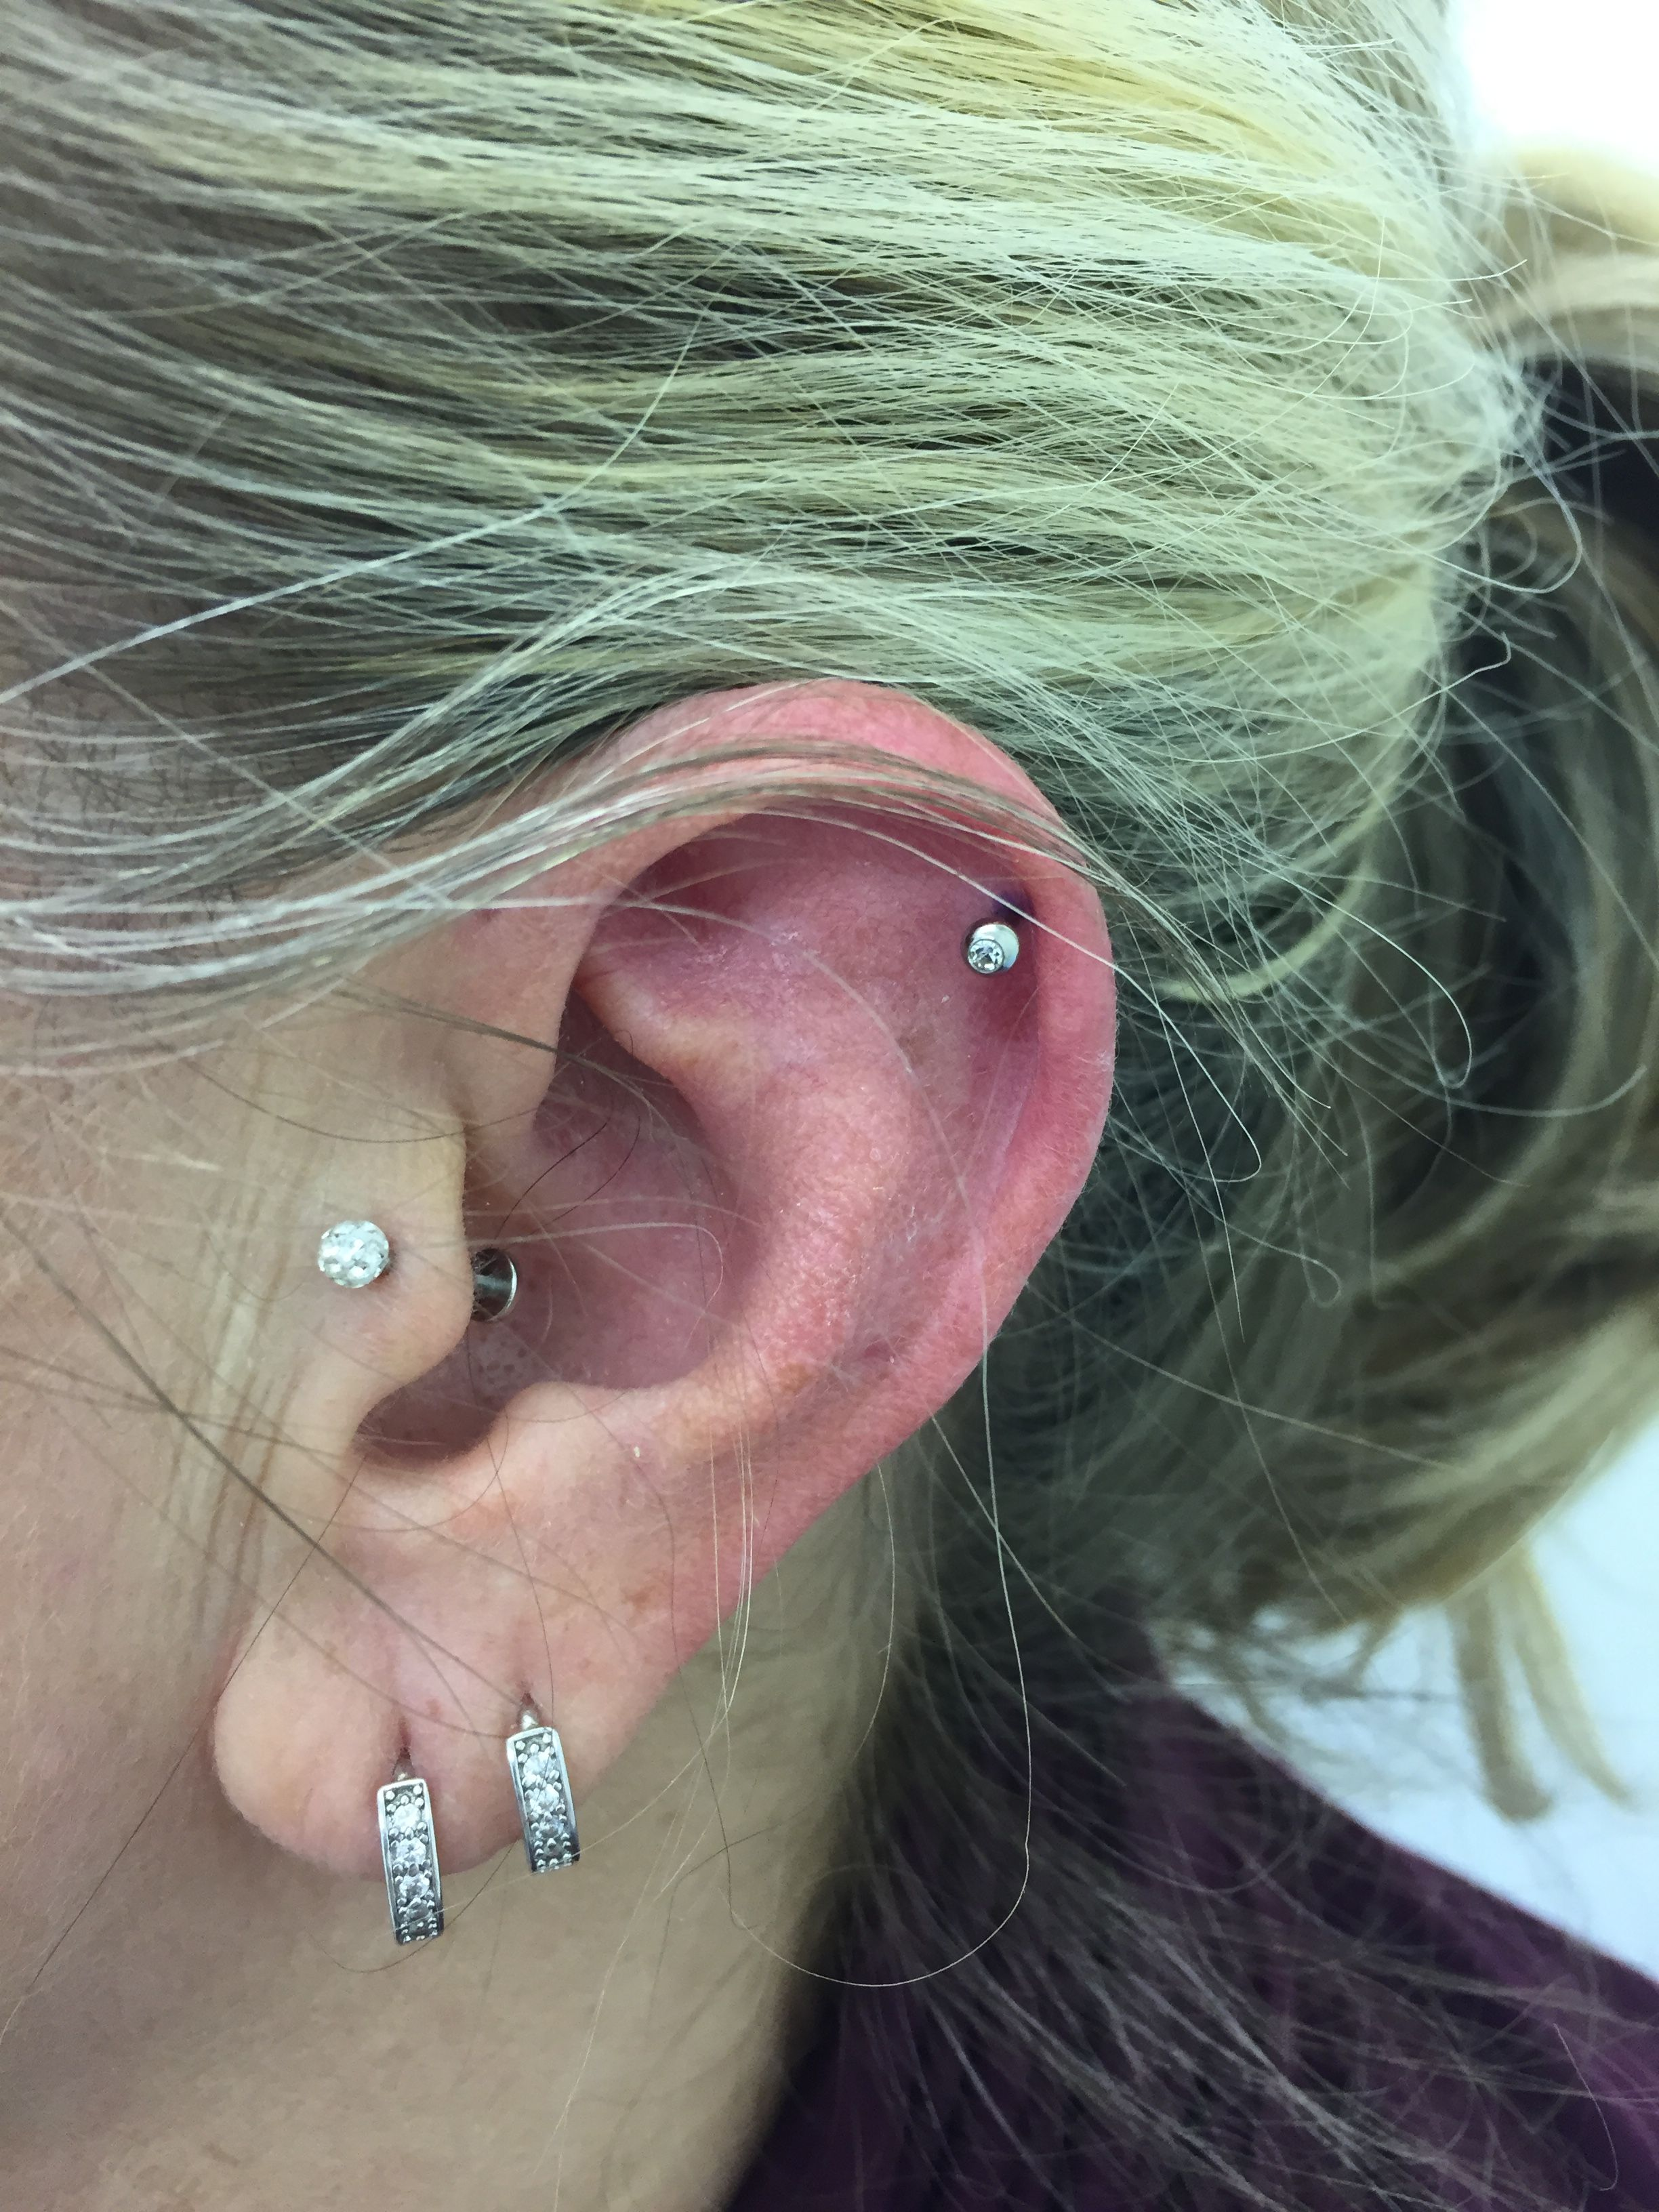 Nose piercing gone wrong  Helix by me  Girls who pierce  Pinterest  Piercing